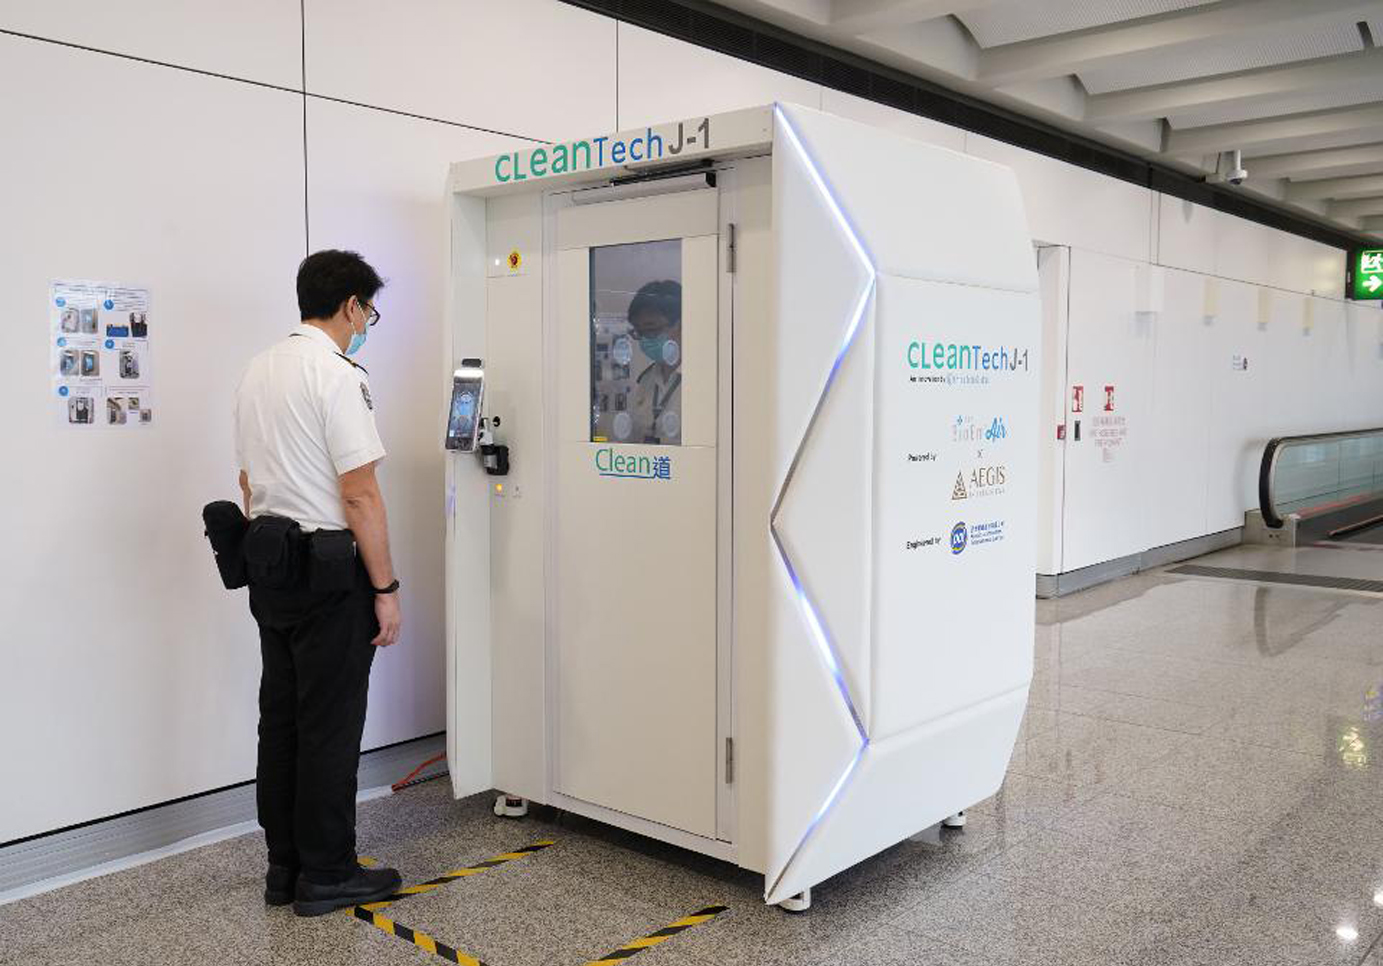 Covid 19 disinfectant station in hong kong disinfection channel technology Hong Kong International Airport disinfection copy